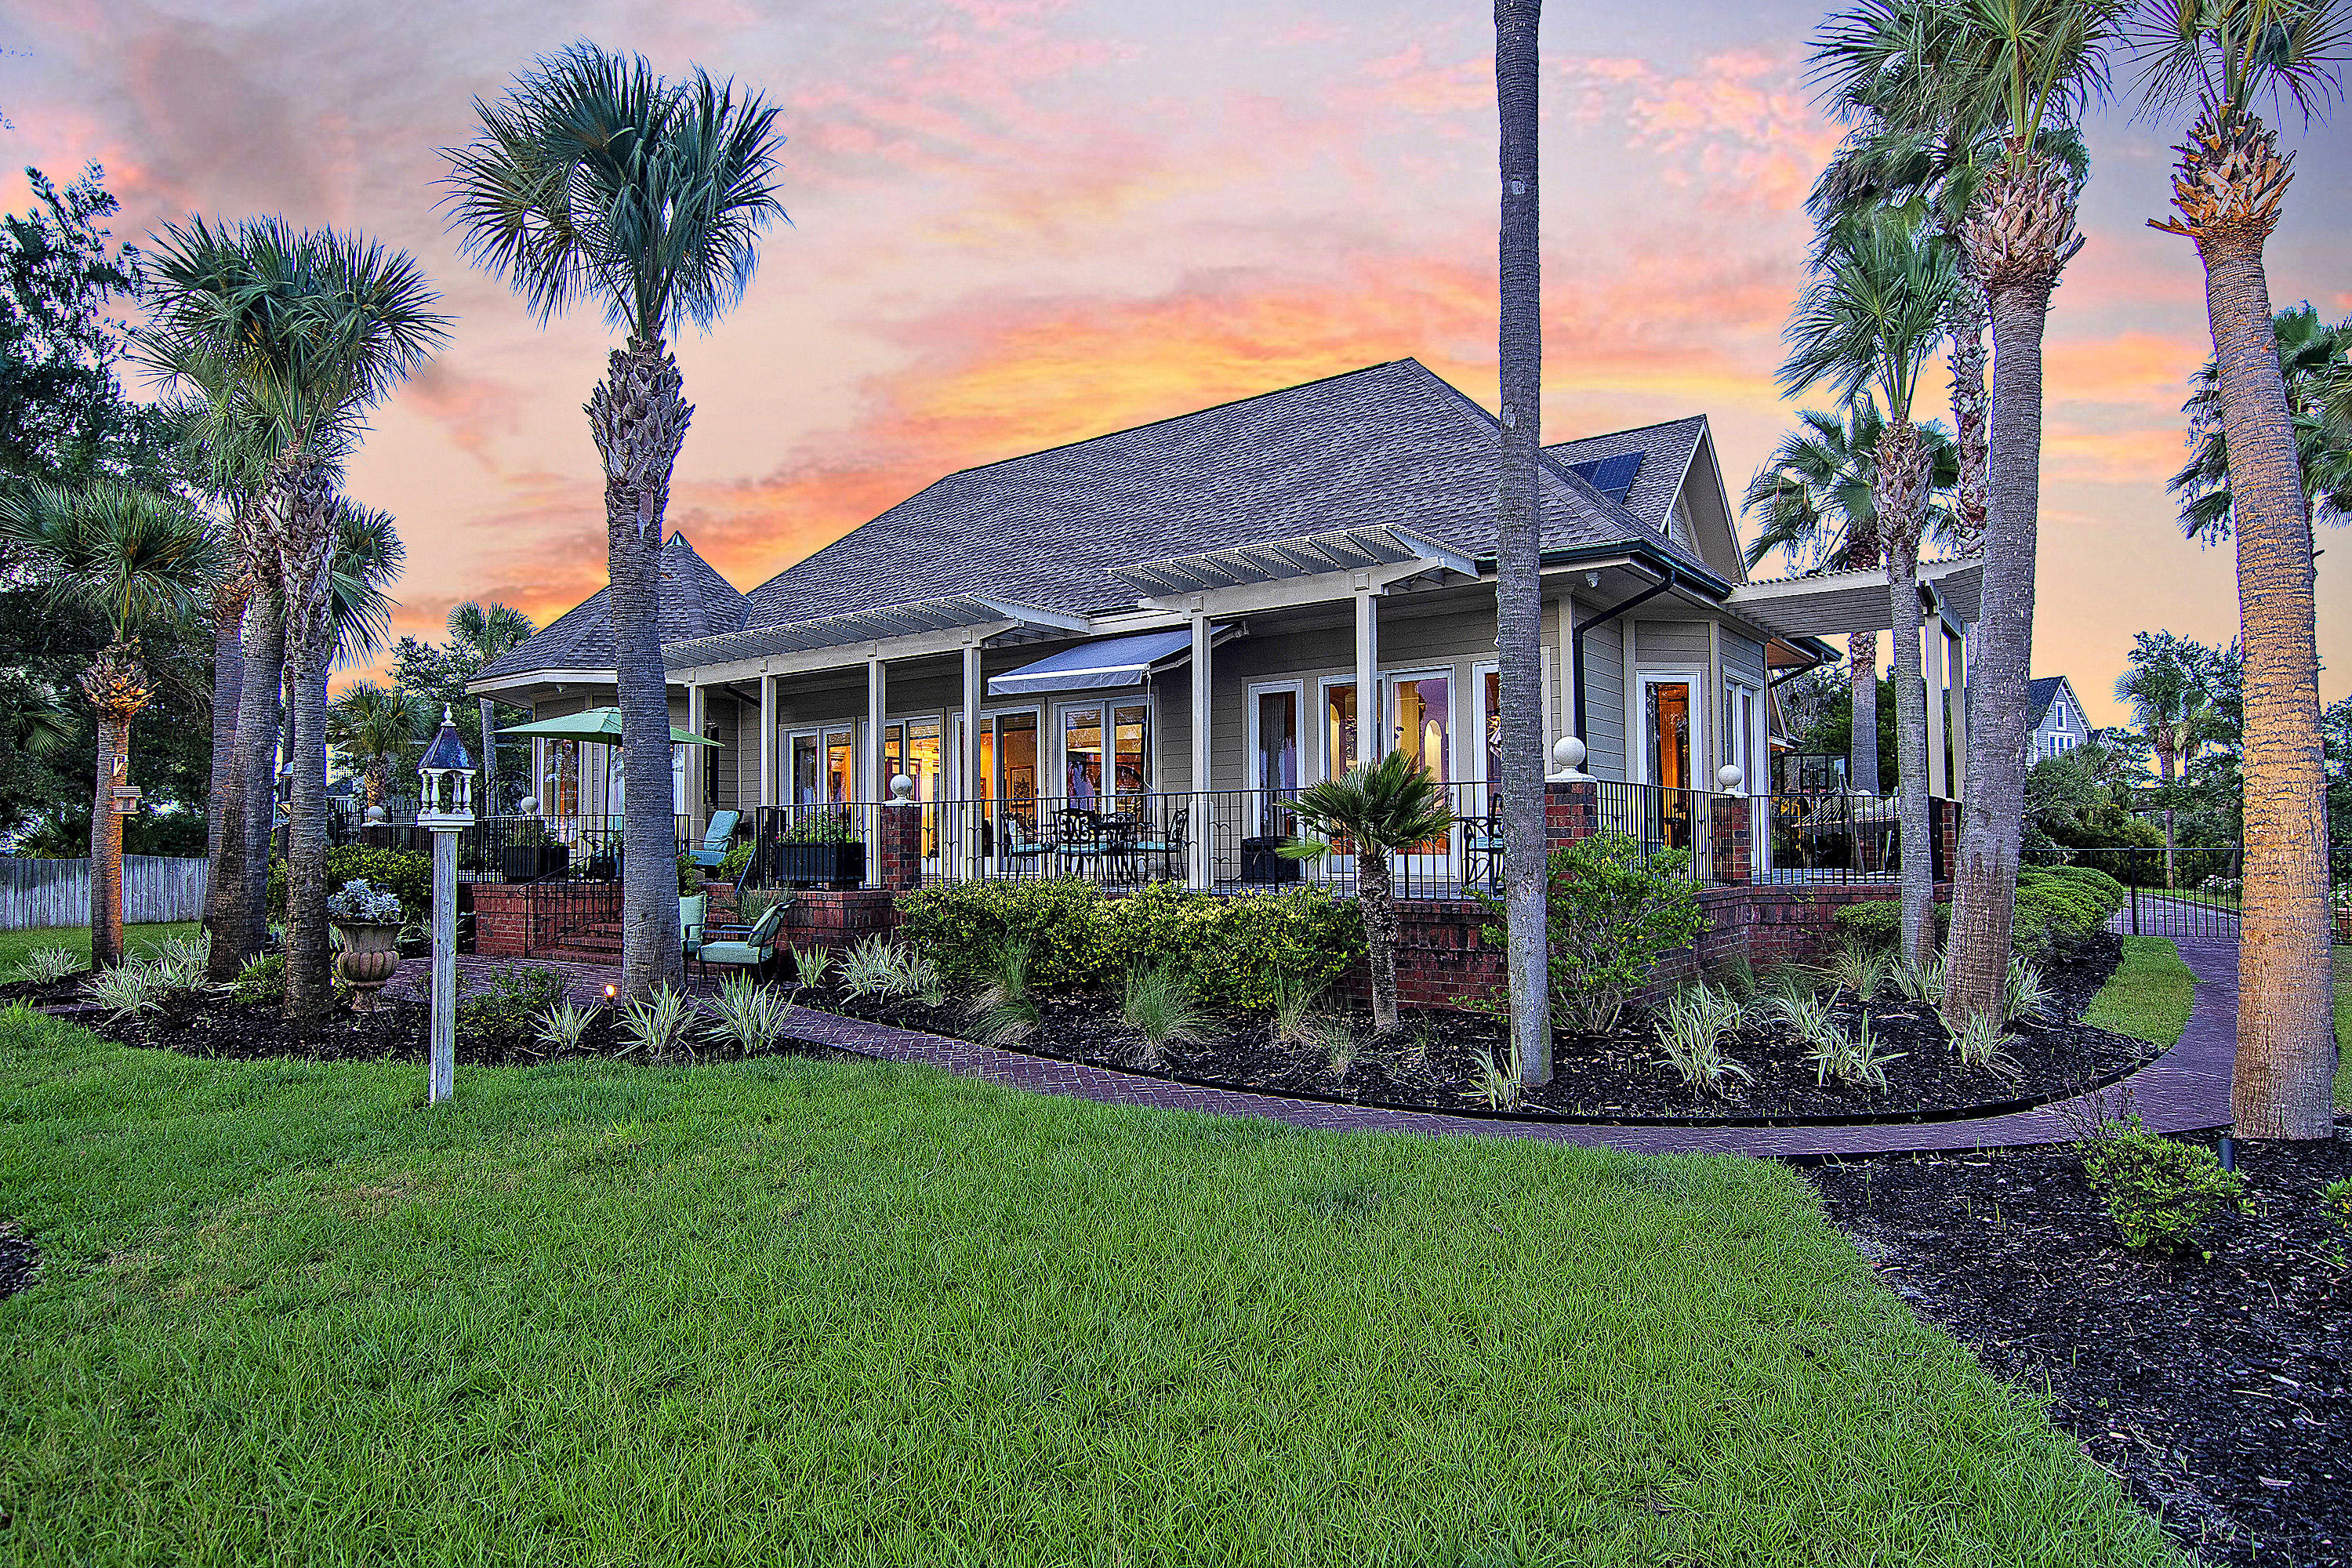 Rivertowne On The Wando Homes For Sale - 1954 Sandy Point, Mount Pleasant, SC - 56